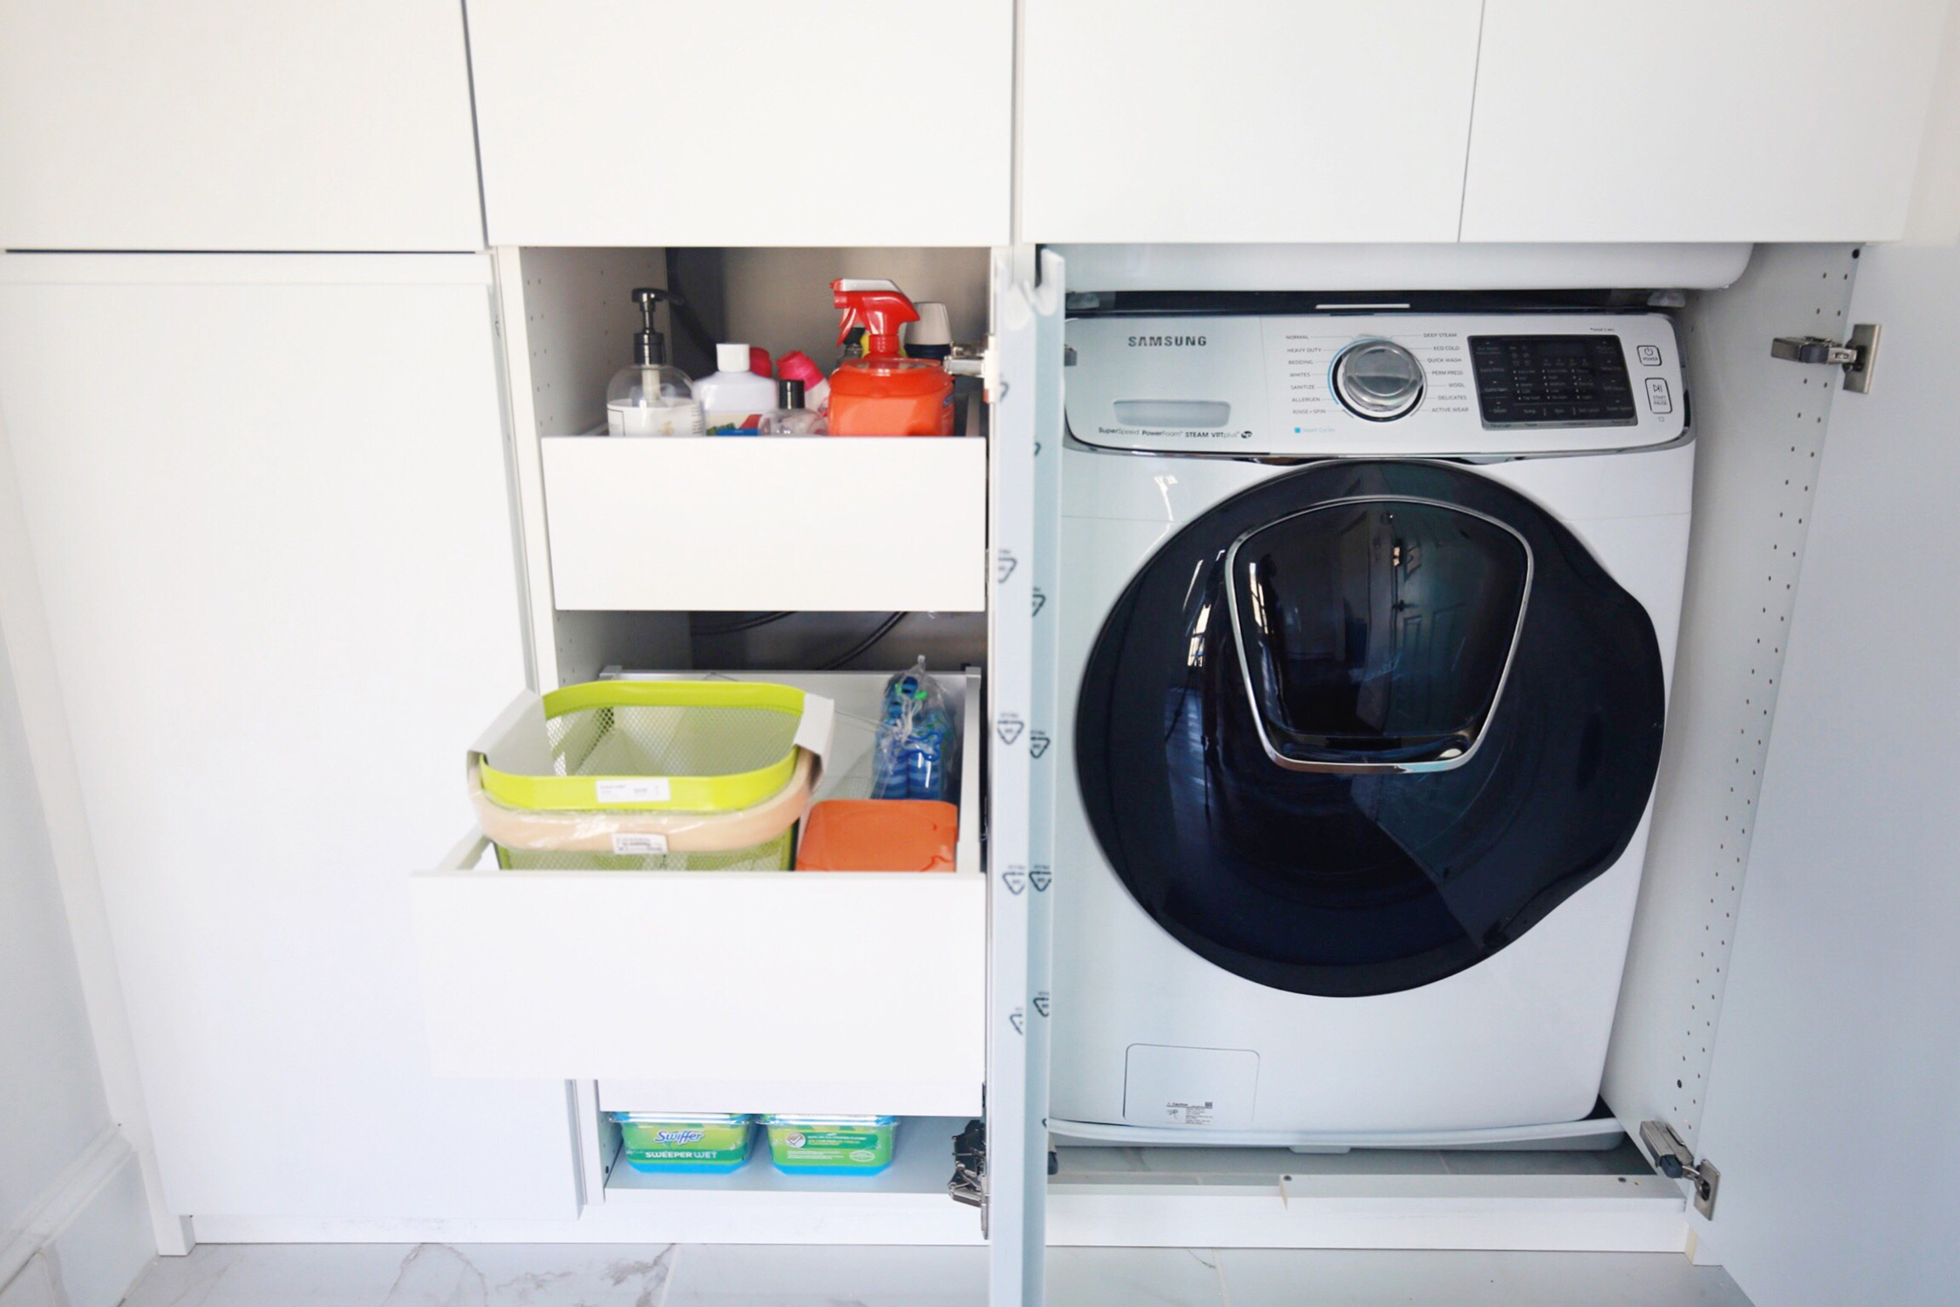 Cabinets opened to reveal washing machine and supplies